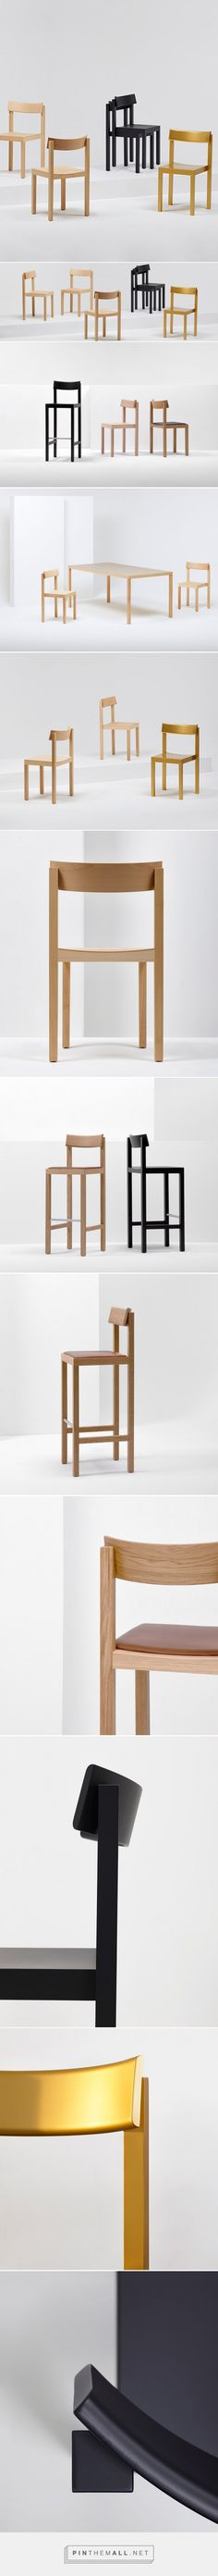 konstantin grcic epitomizes archetypal chair in primo